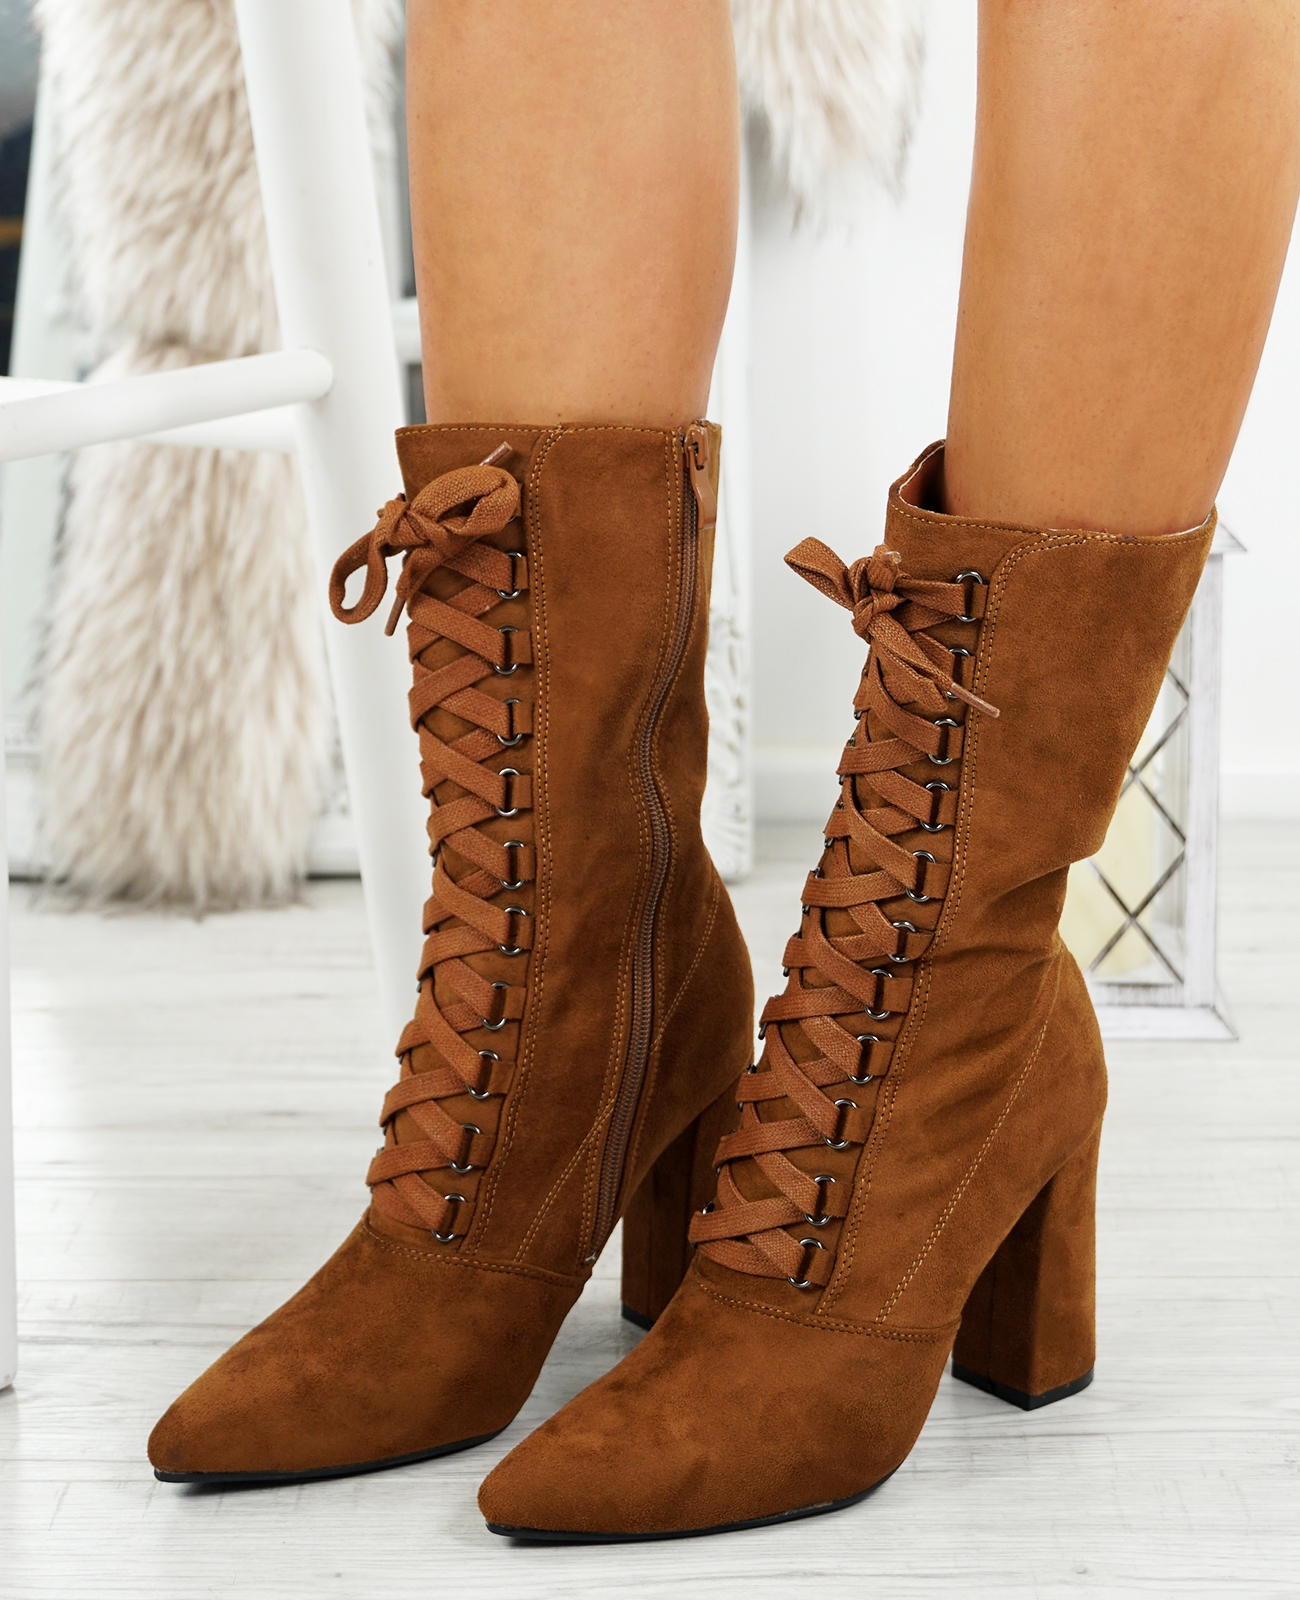 LADIES WOMENS HIGH TOP ANKLE BOOTS SIDE ZIP LACE BLOCK HEEL POINTED TOE SHOES